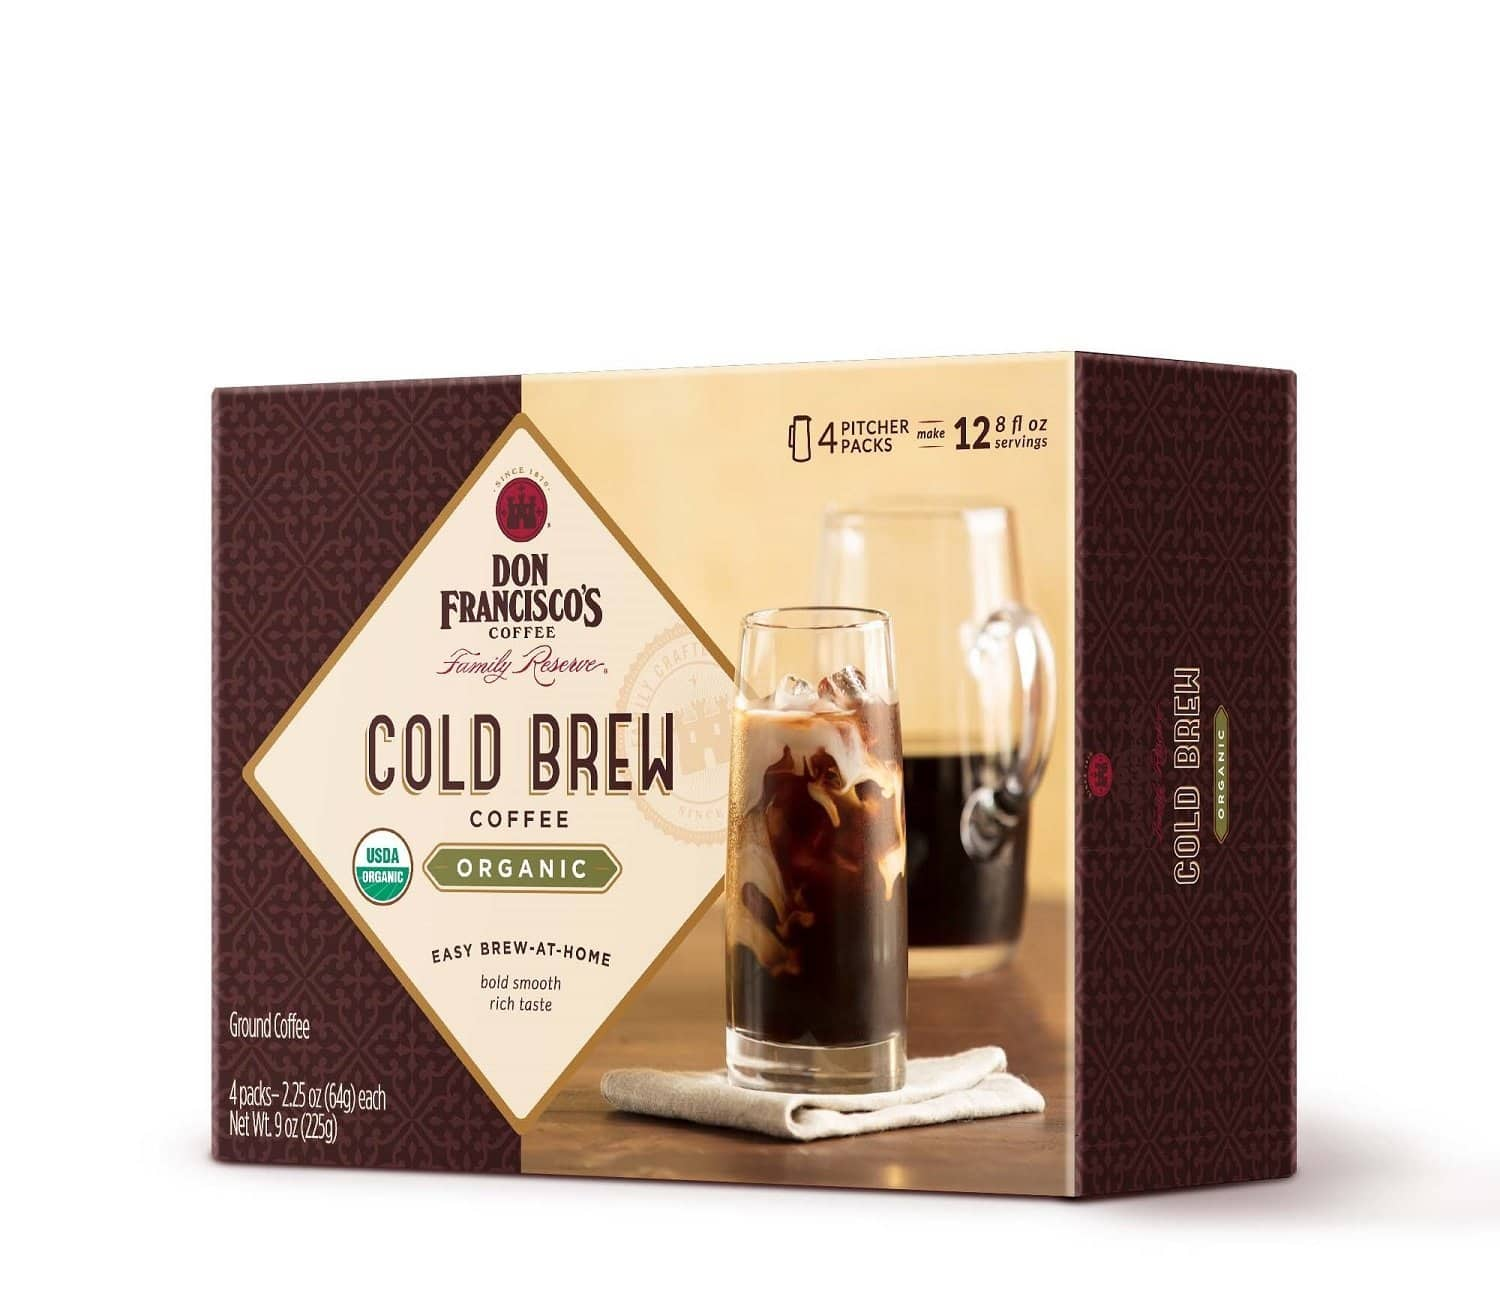 4-Count Don Francisco's Cold Brew Coffee Pitcher Packs $5.84 or Less w/ S&S + Free Shipping ~ Amazon